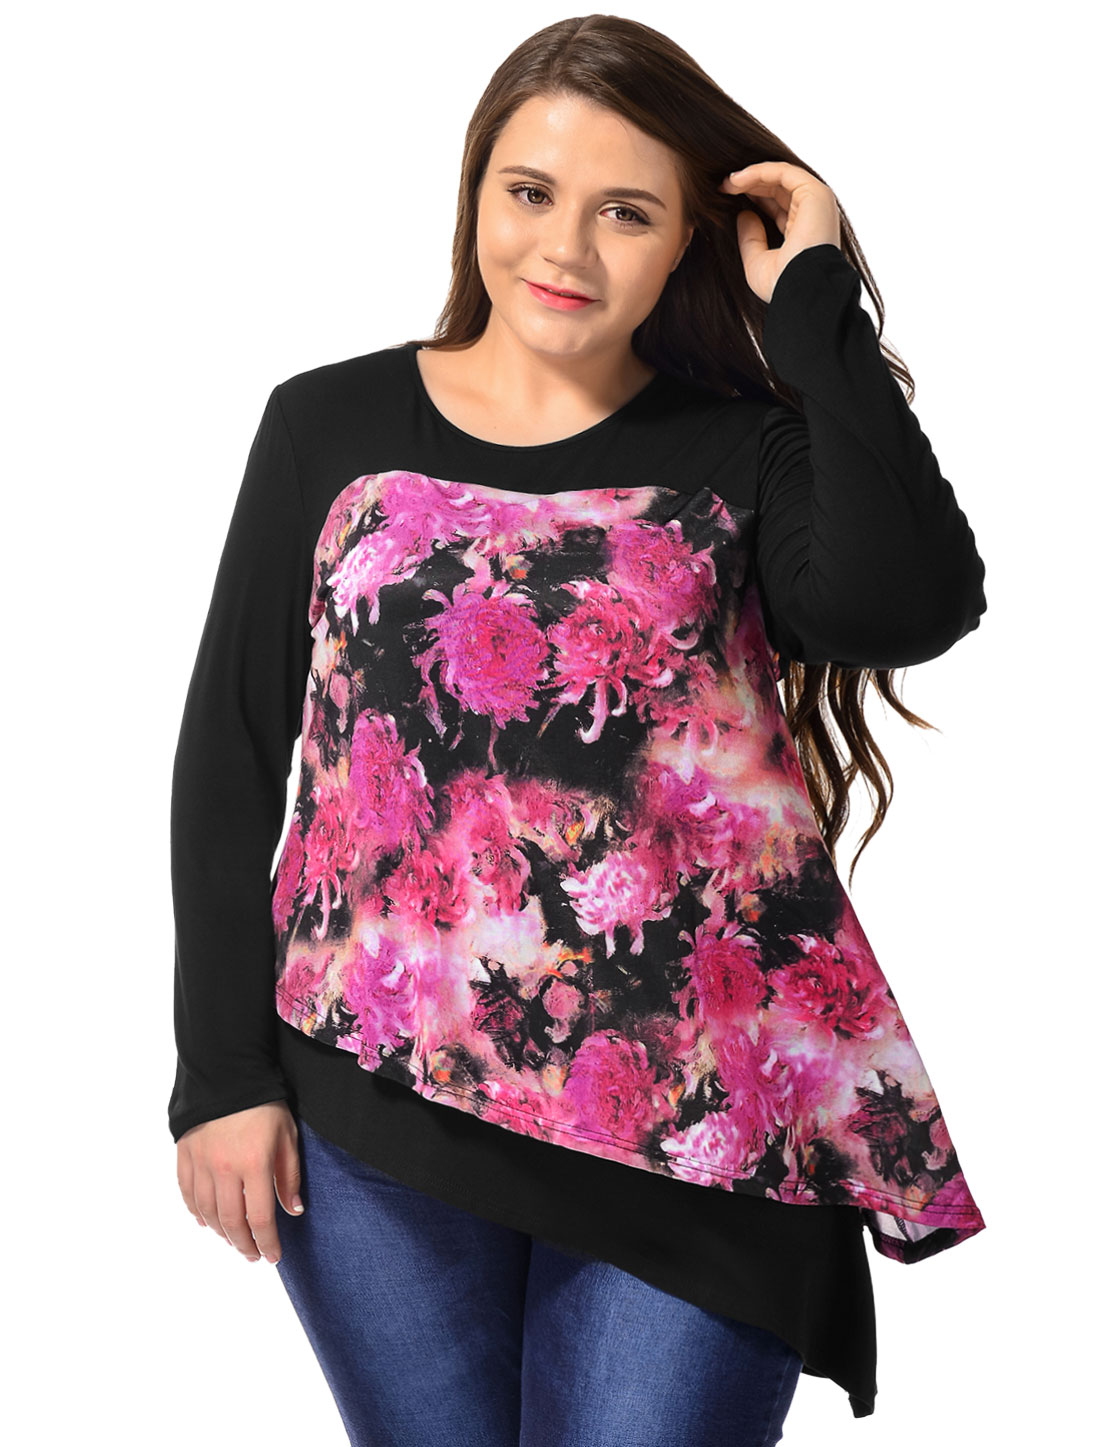 Women Plus Size Floral Prints Long Sleeves Layered Top Black 3X